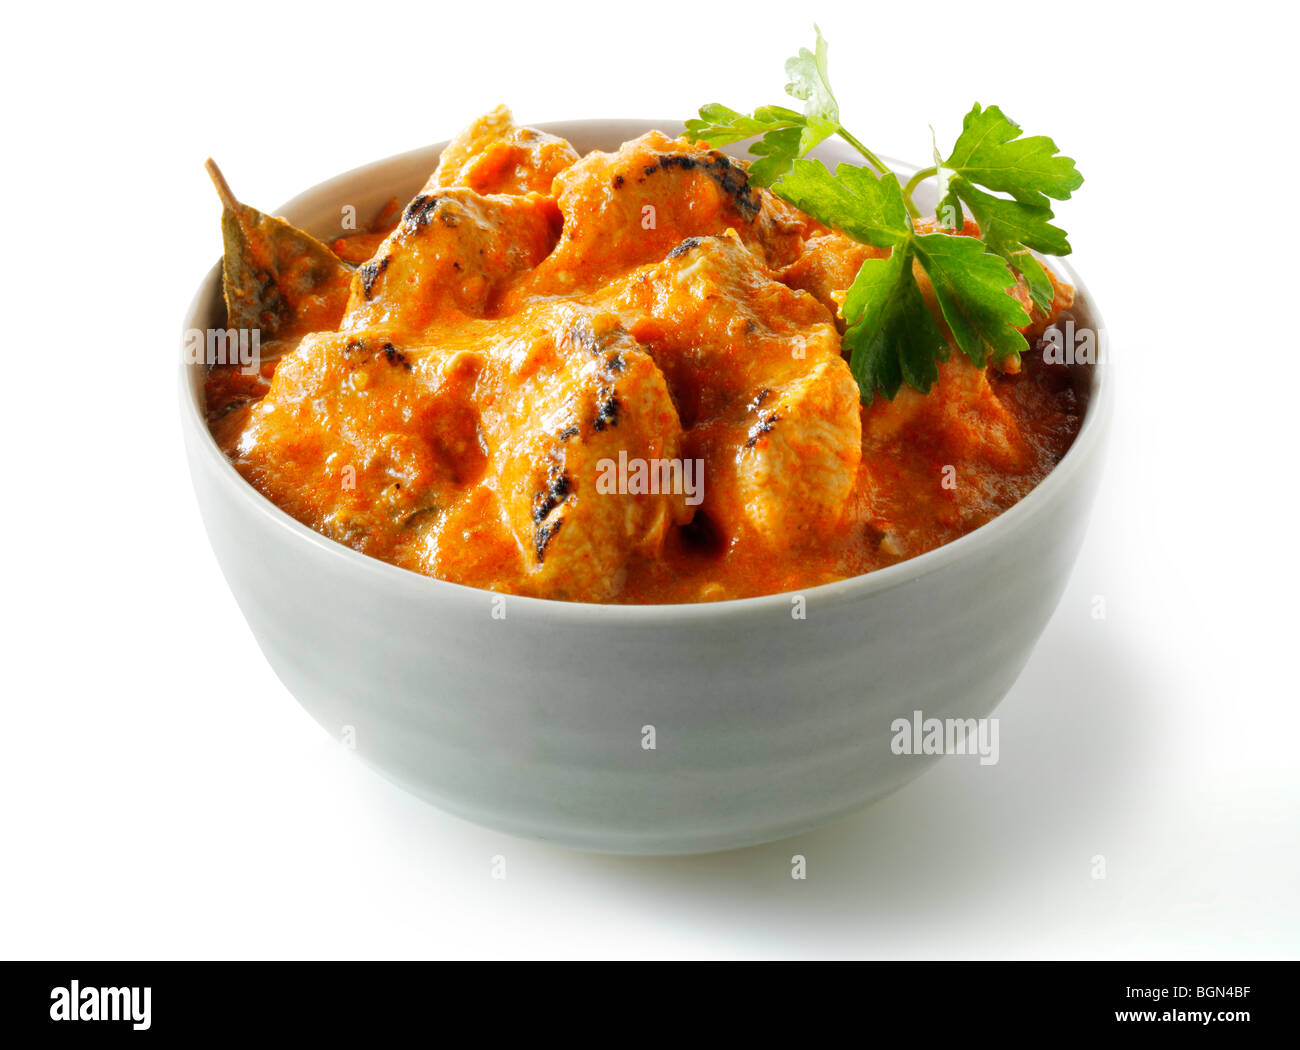 butter chicken curry Indian food - Stock Image